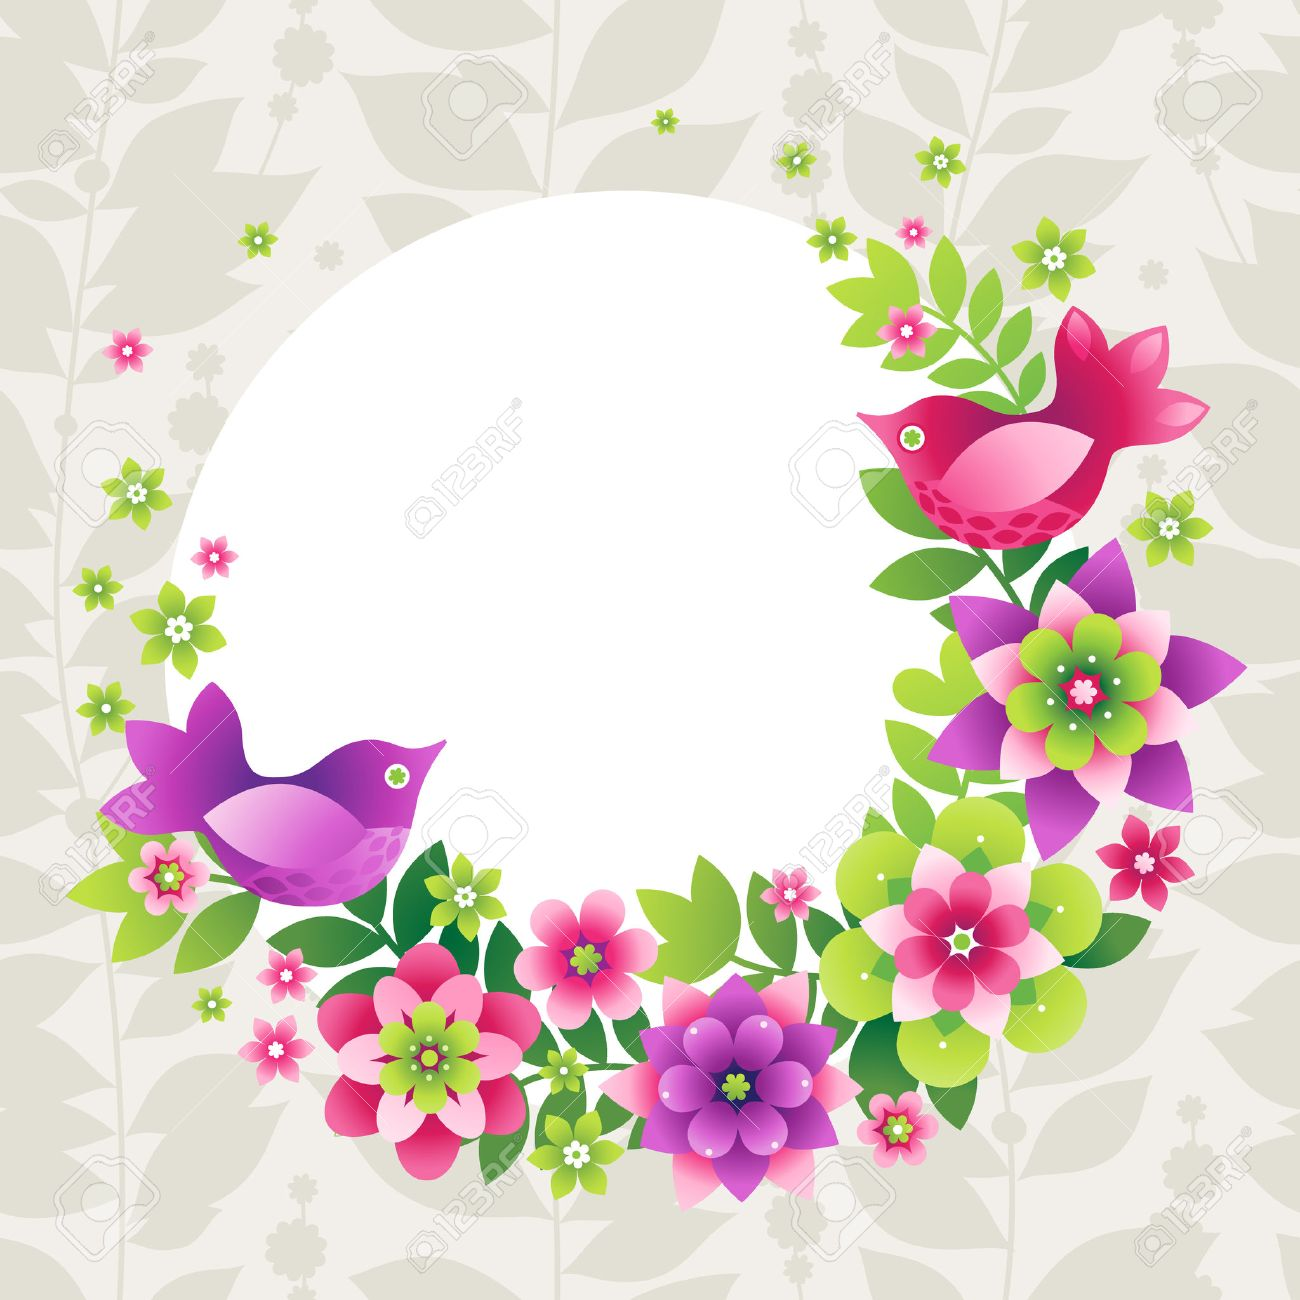 Bright Wreath With Colorful Flowers And Birds Place For Your